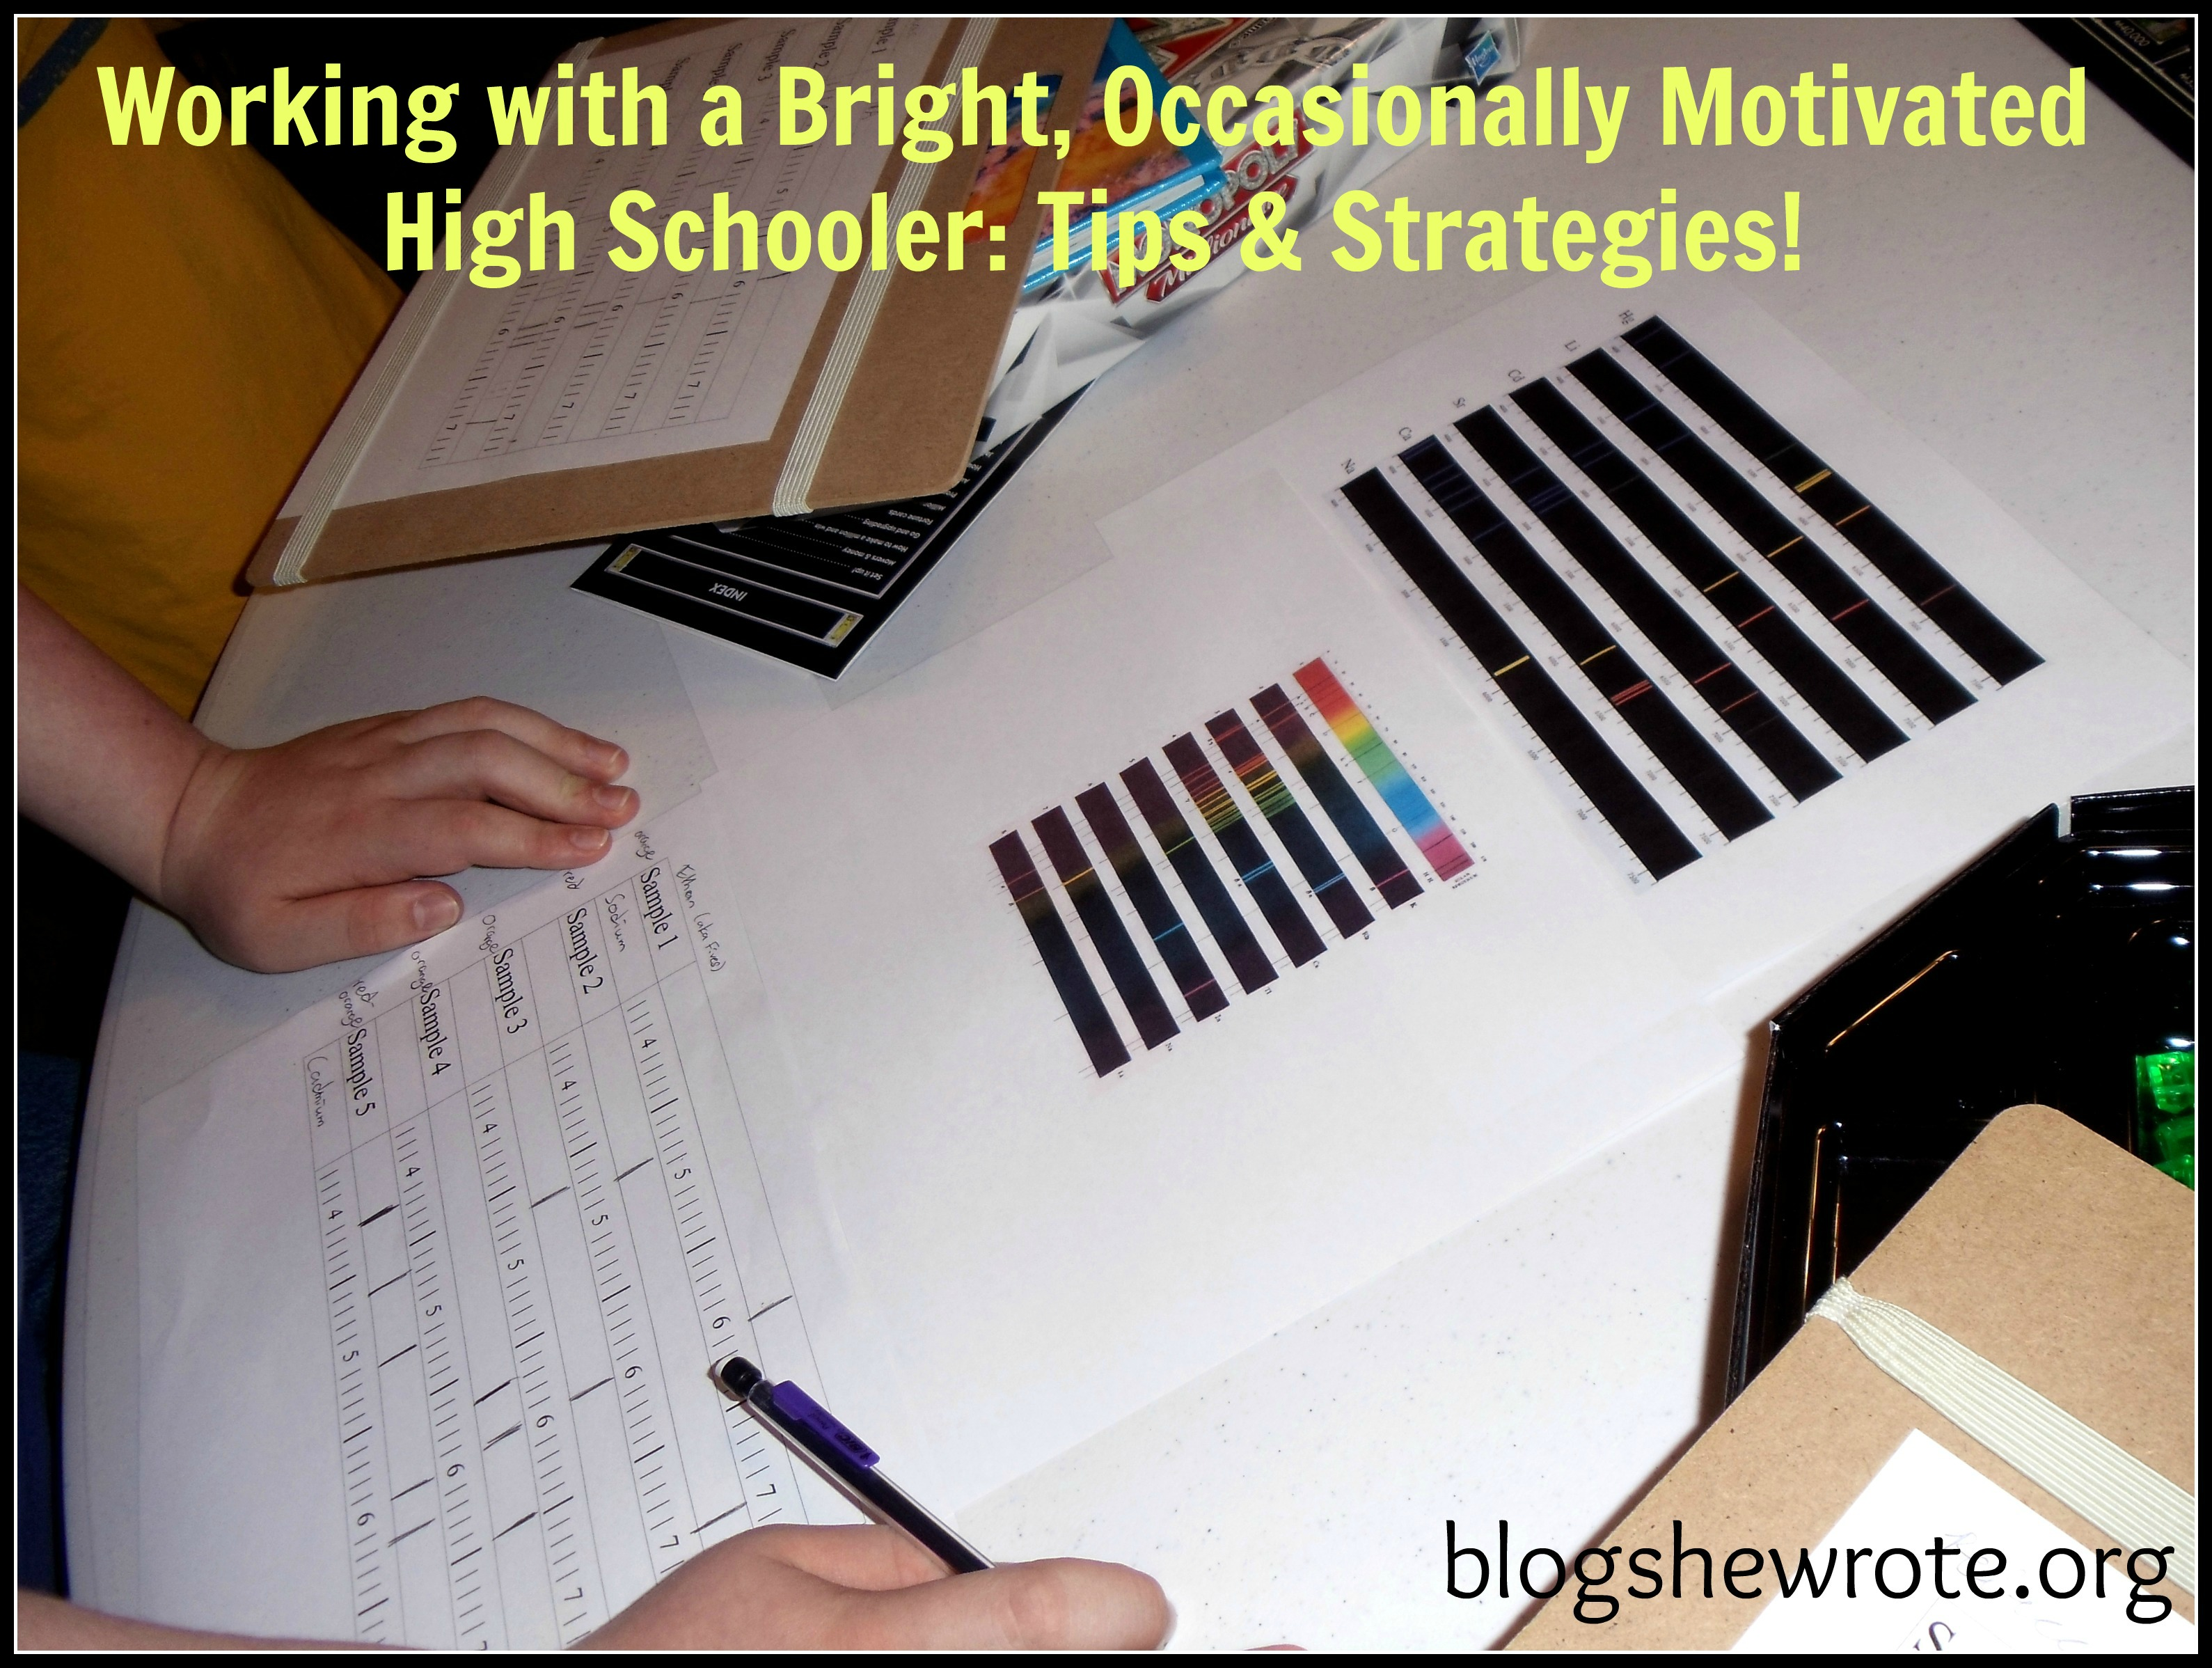 Blog, She Wrote: Working with a Bright, Occasionally Motivated High Schooler